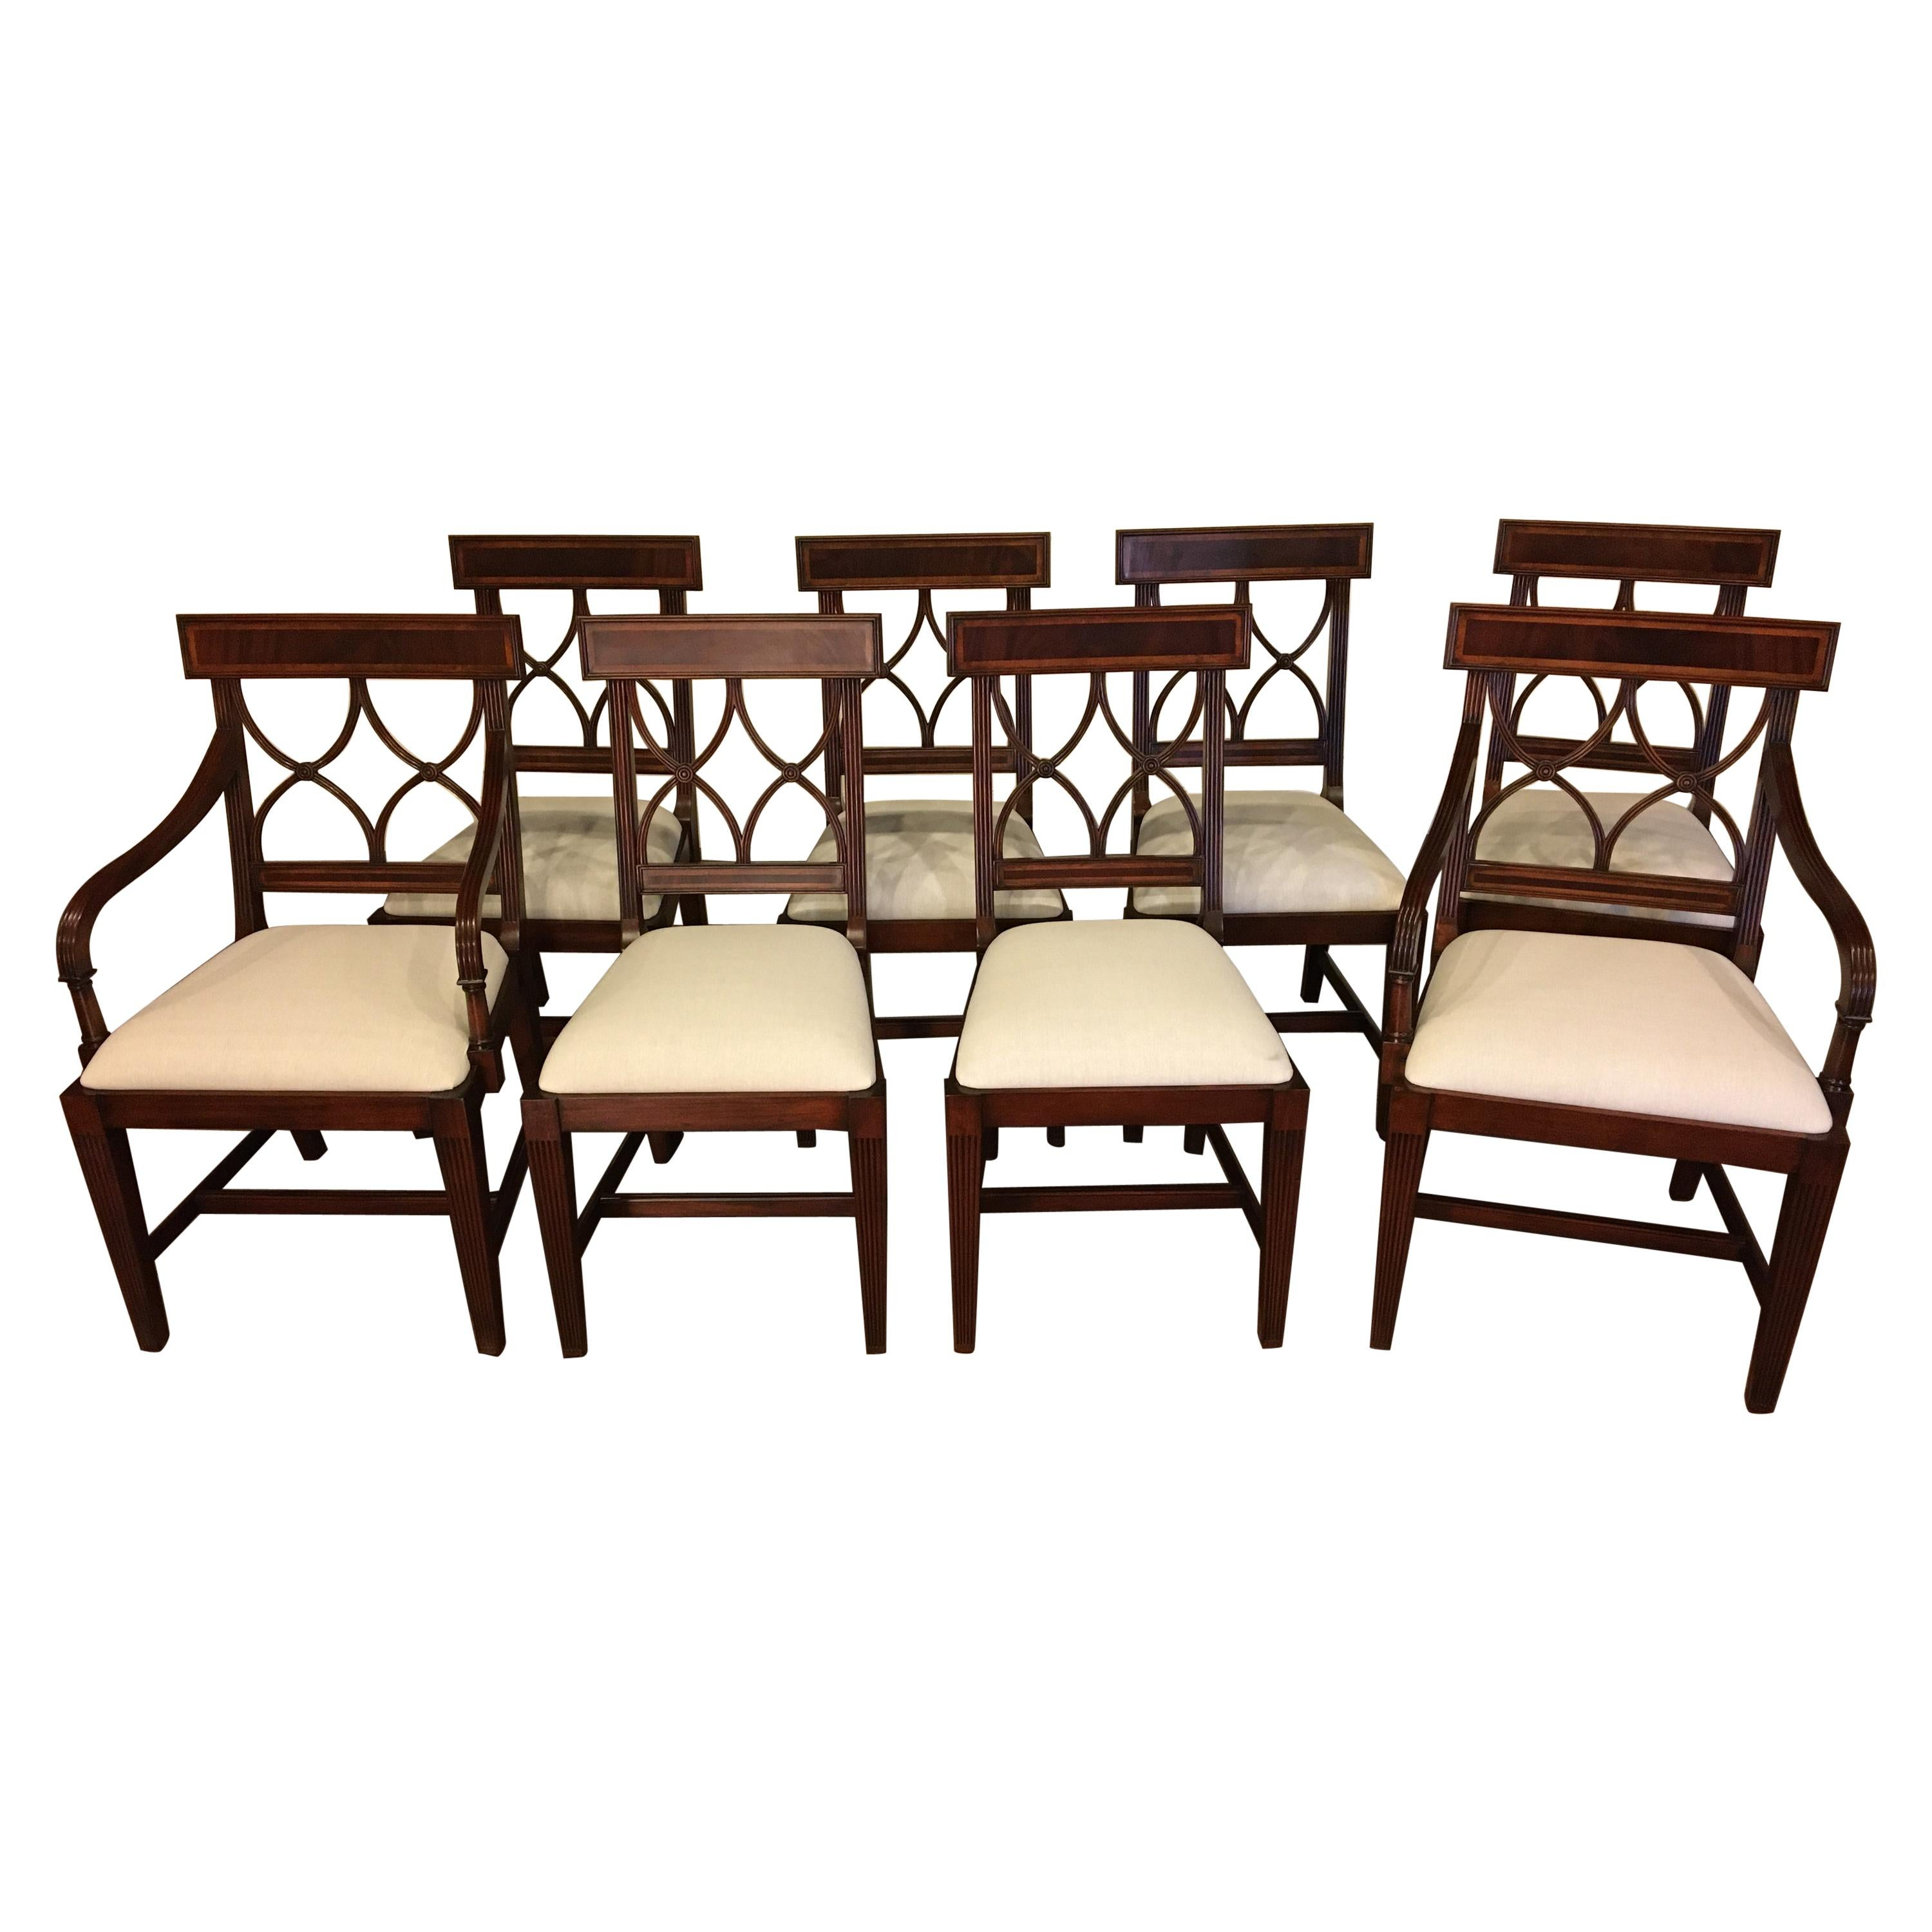 Eight New Traditional Mahogany Adams Style Dining Chairs by Leighton Hall